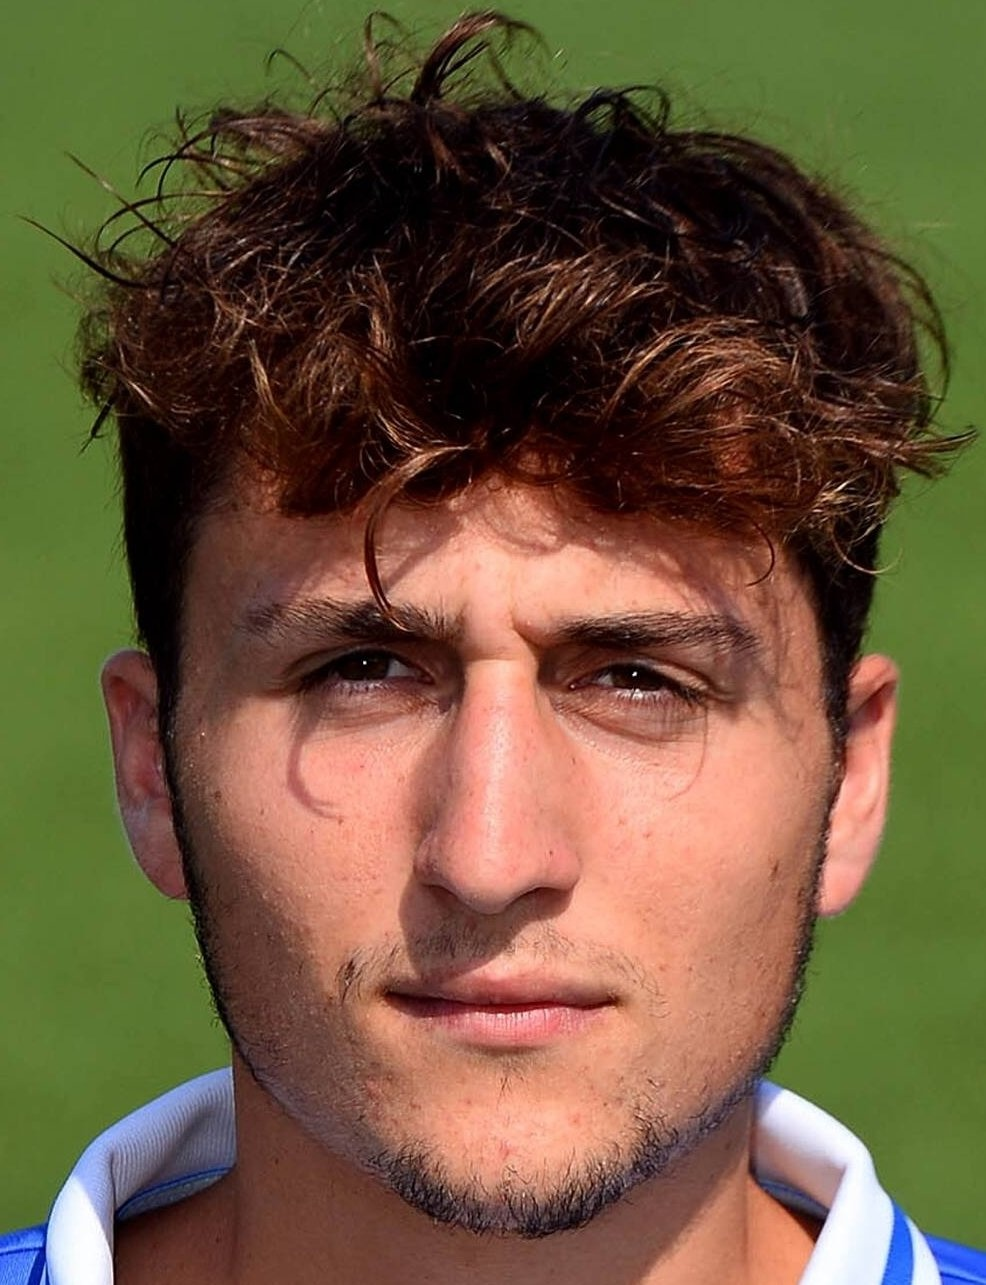 The 22-year old son of father (?) and mother(?), 180 cm tall Leonardo Morosini in 2018 photo